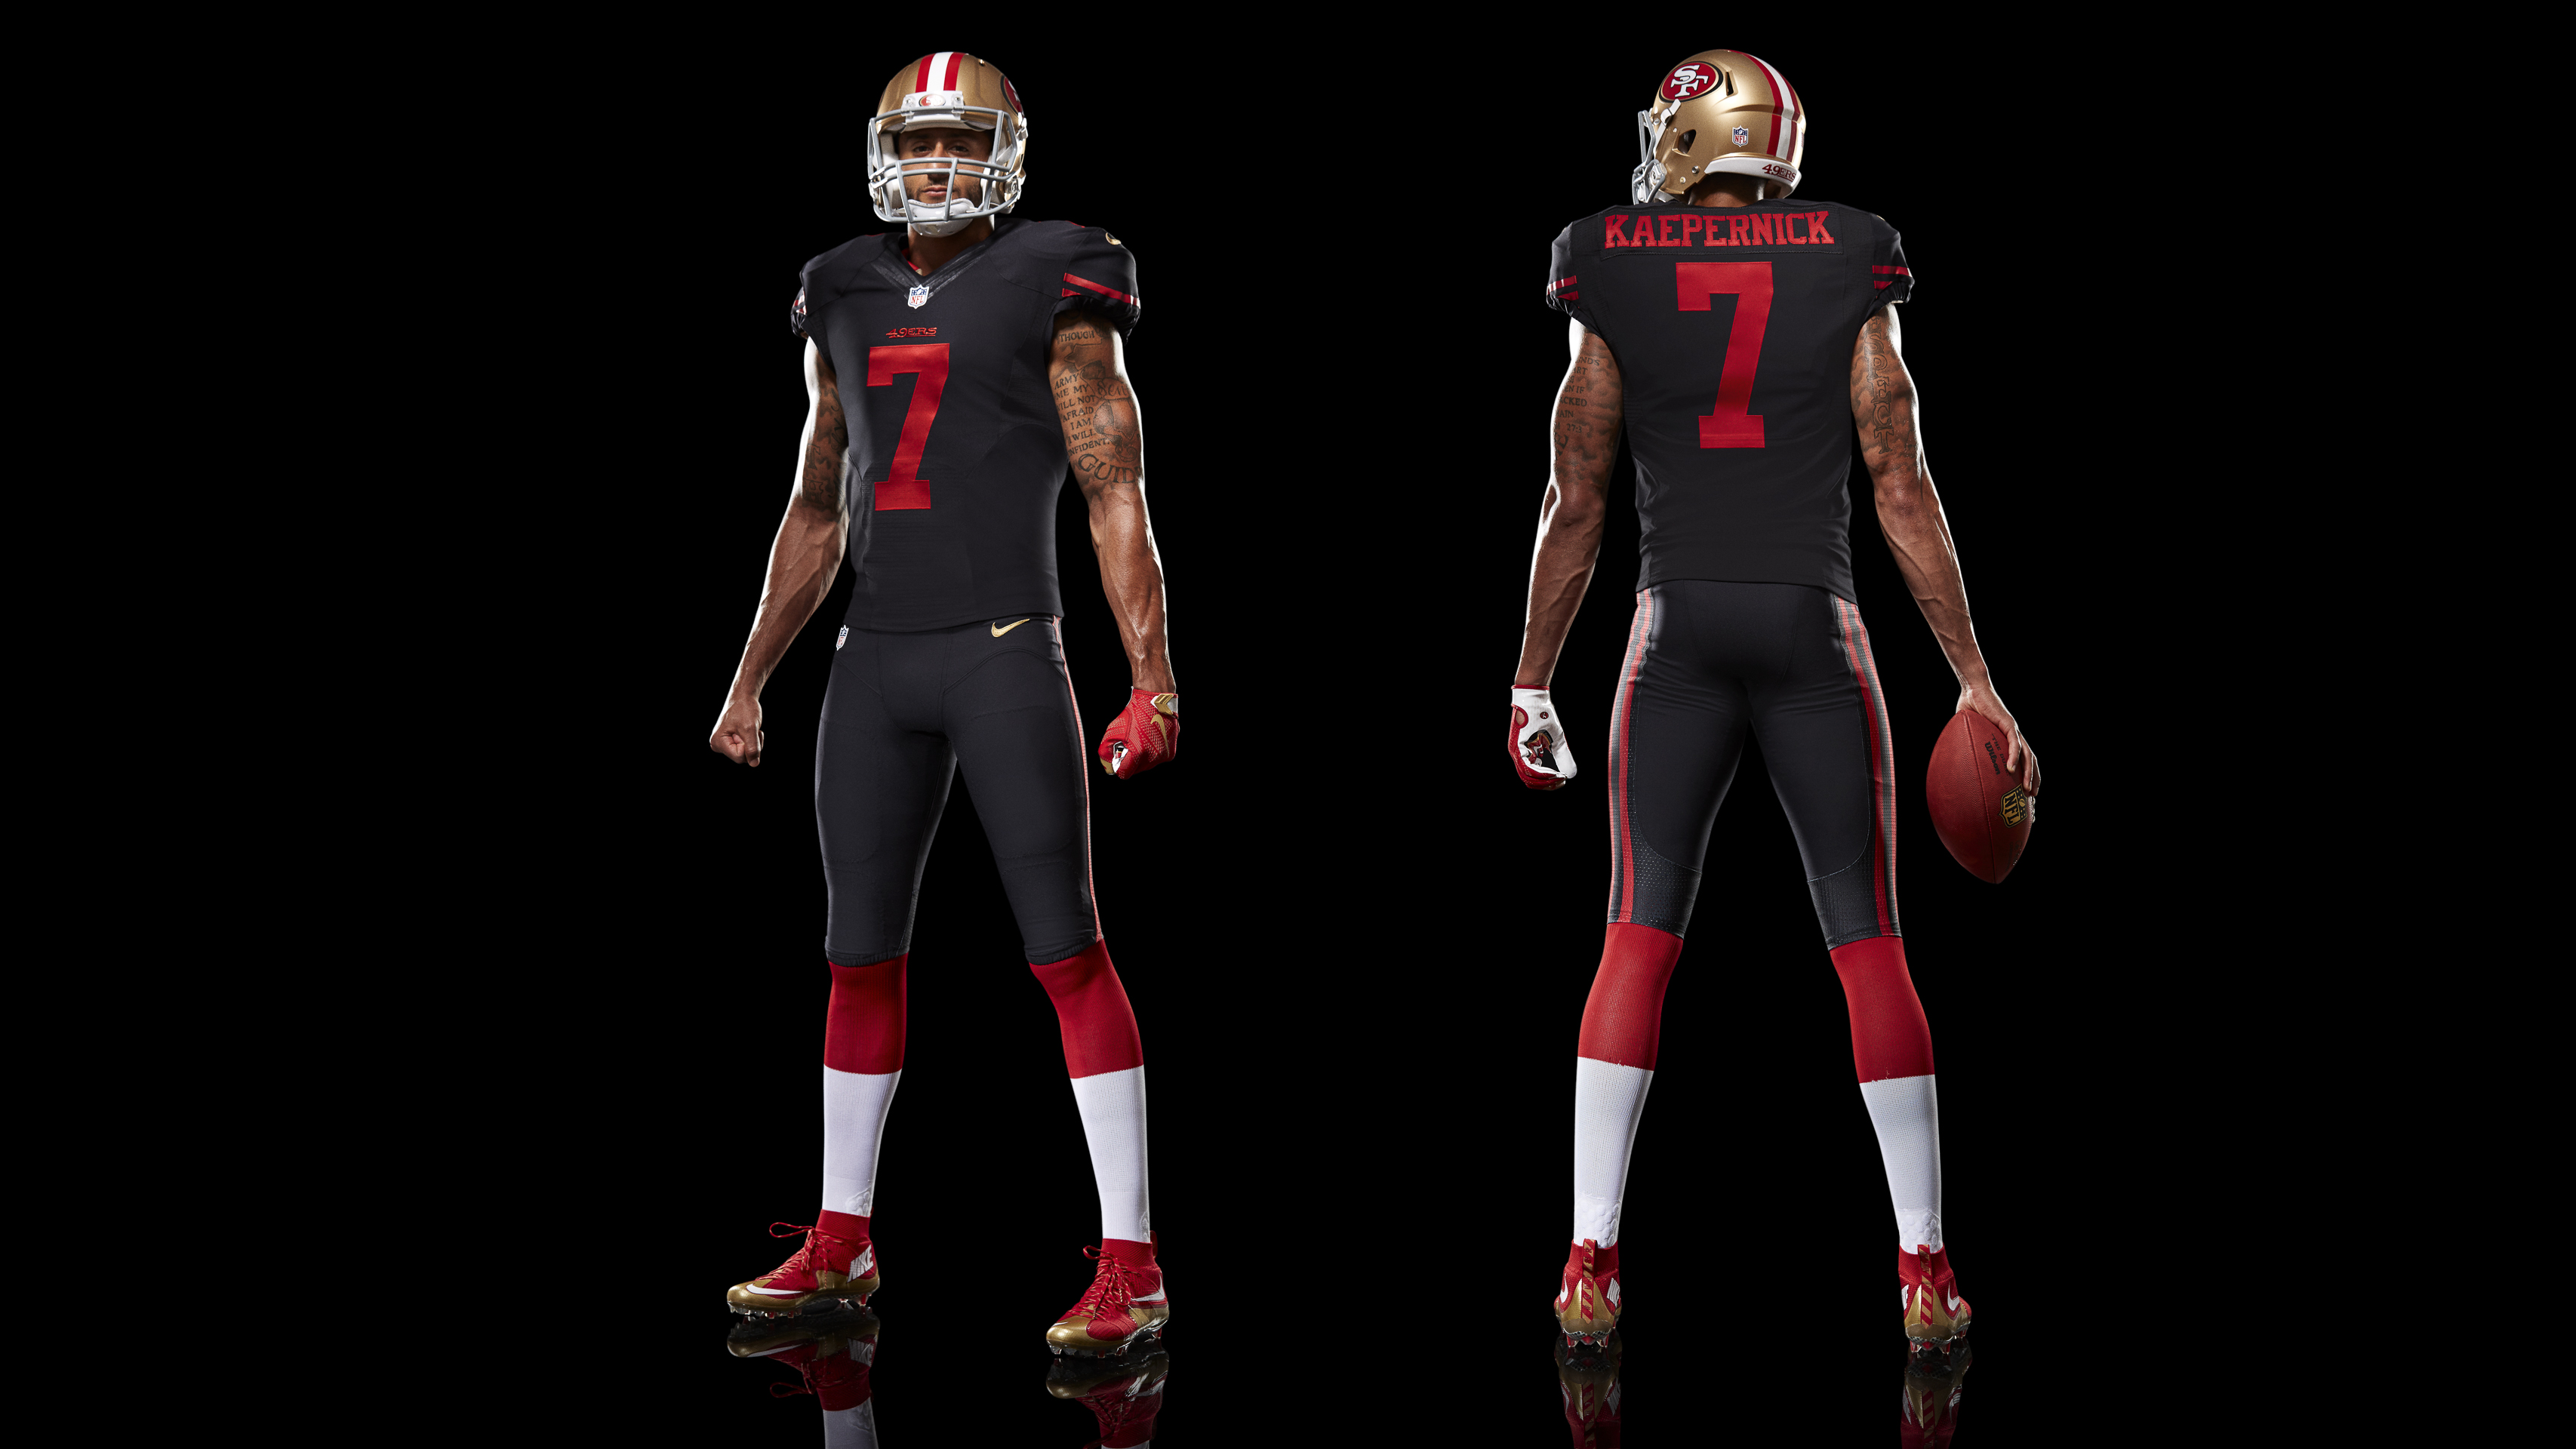 f388d609a03 ... Colin Kaepernick Limited Gray Gridiron NFL Jersey For Sale All Black  Everything The San Francisco 49ers New Alternate . Nike ...